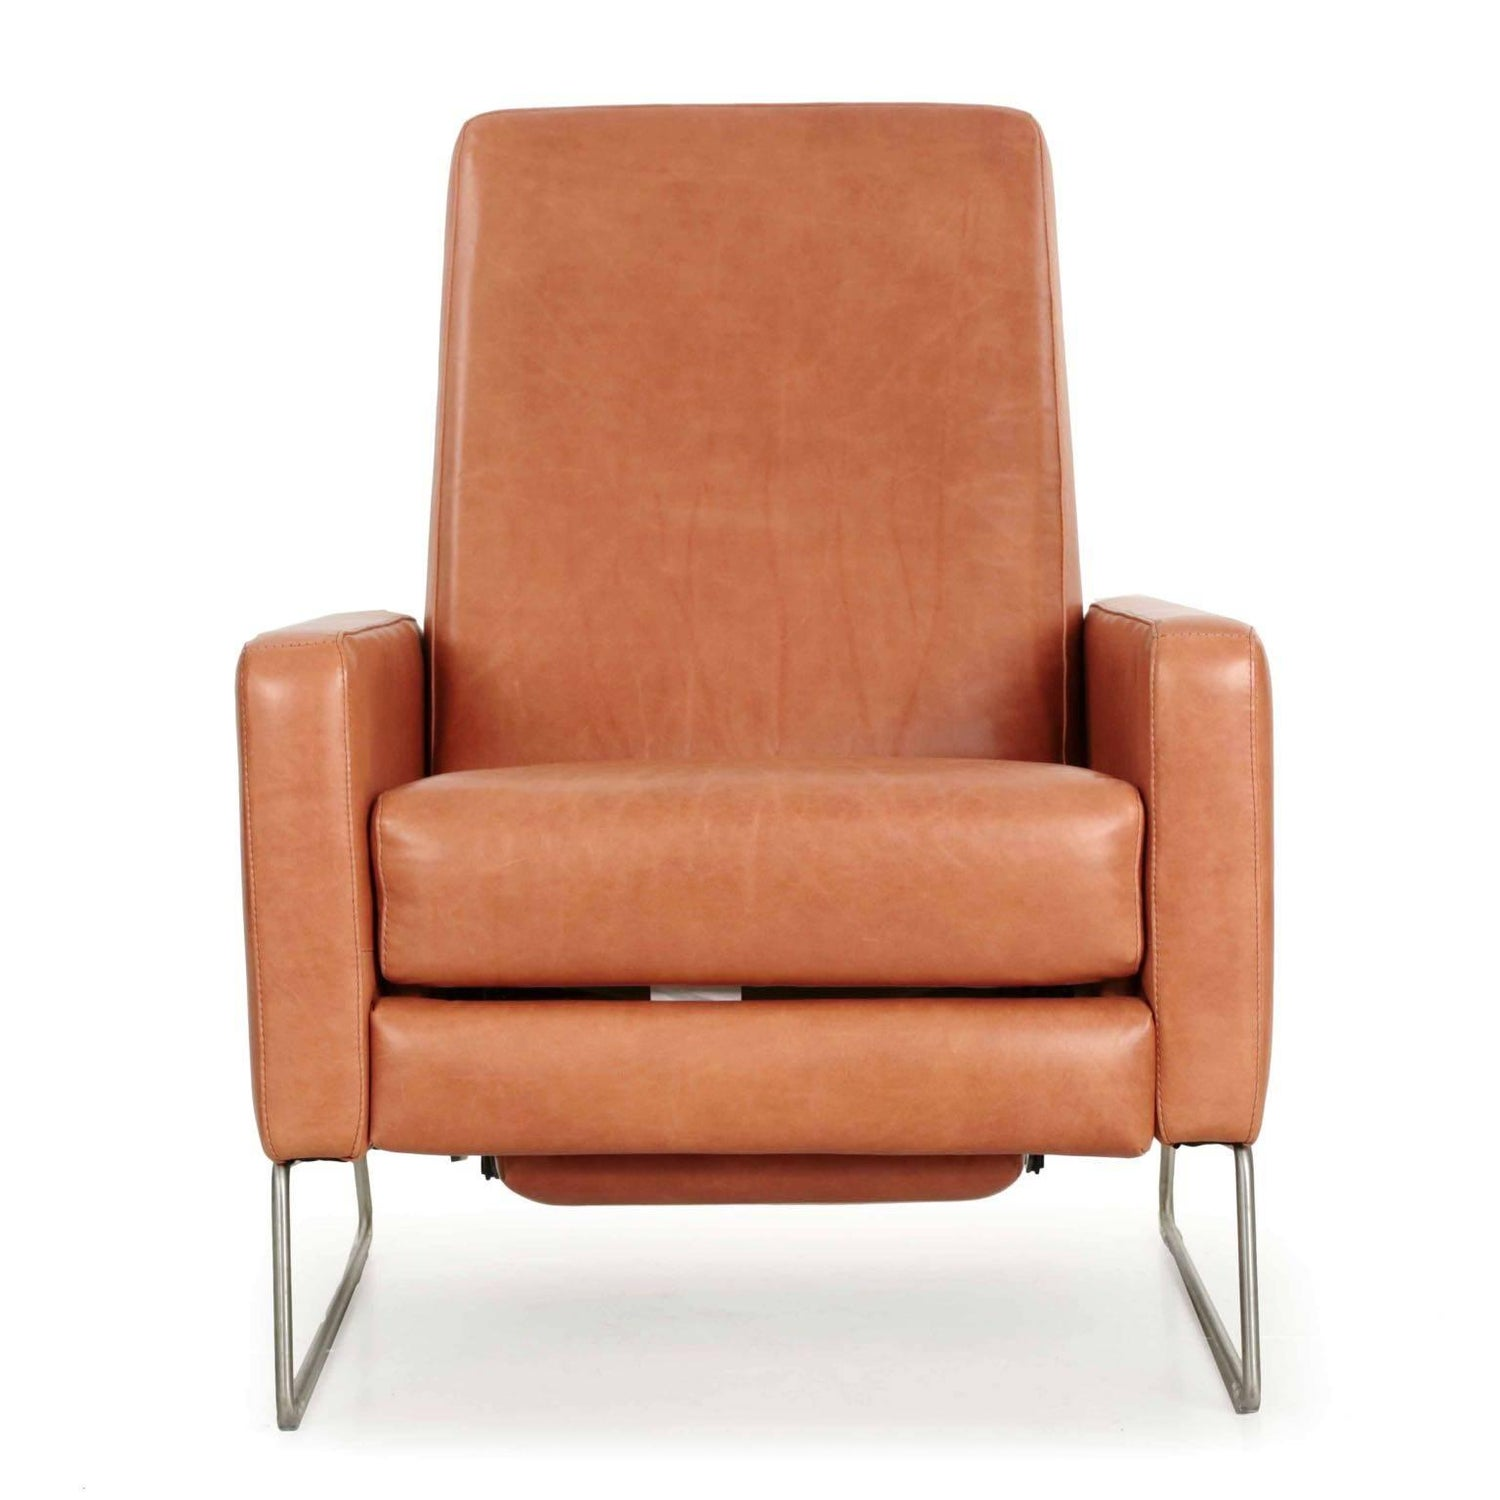 design within reach outdoor furniture. Ted Boerner For DWR Caramel-Brown Reclining Leather Lounge Chair On Steel Legs At 1stdibs Design Within Reach Outdoor Furniture A